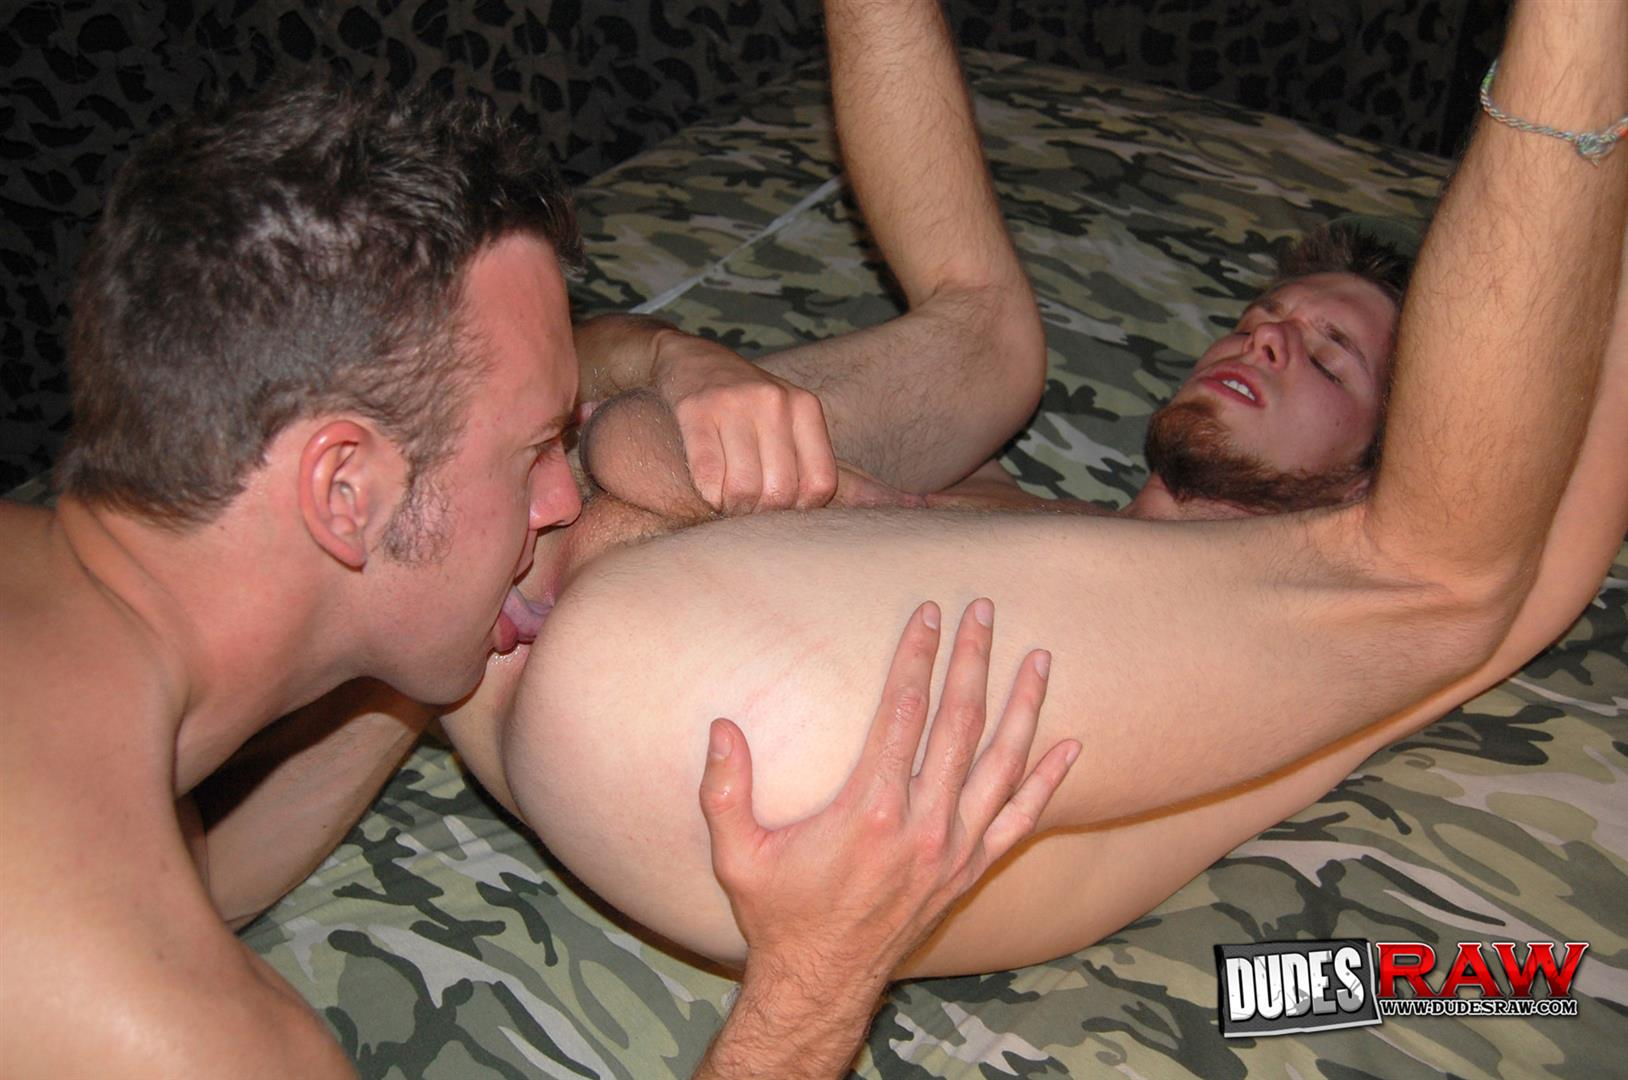 Naked gay guys fucking each other